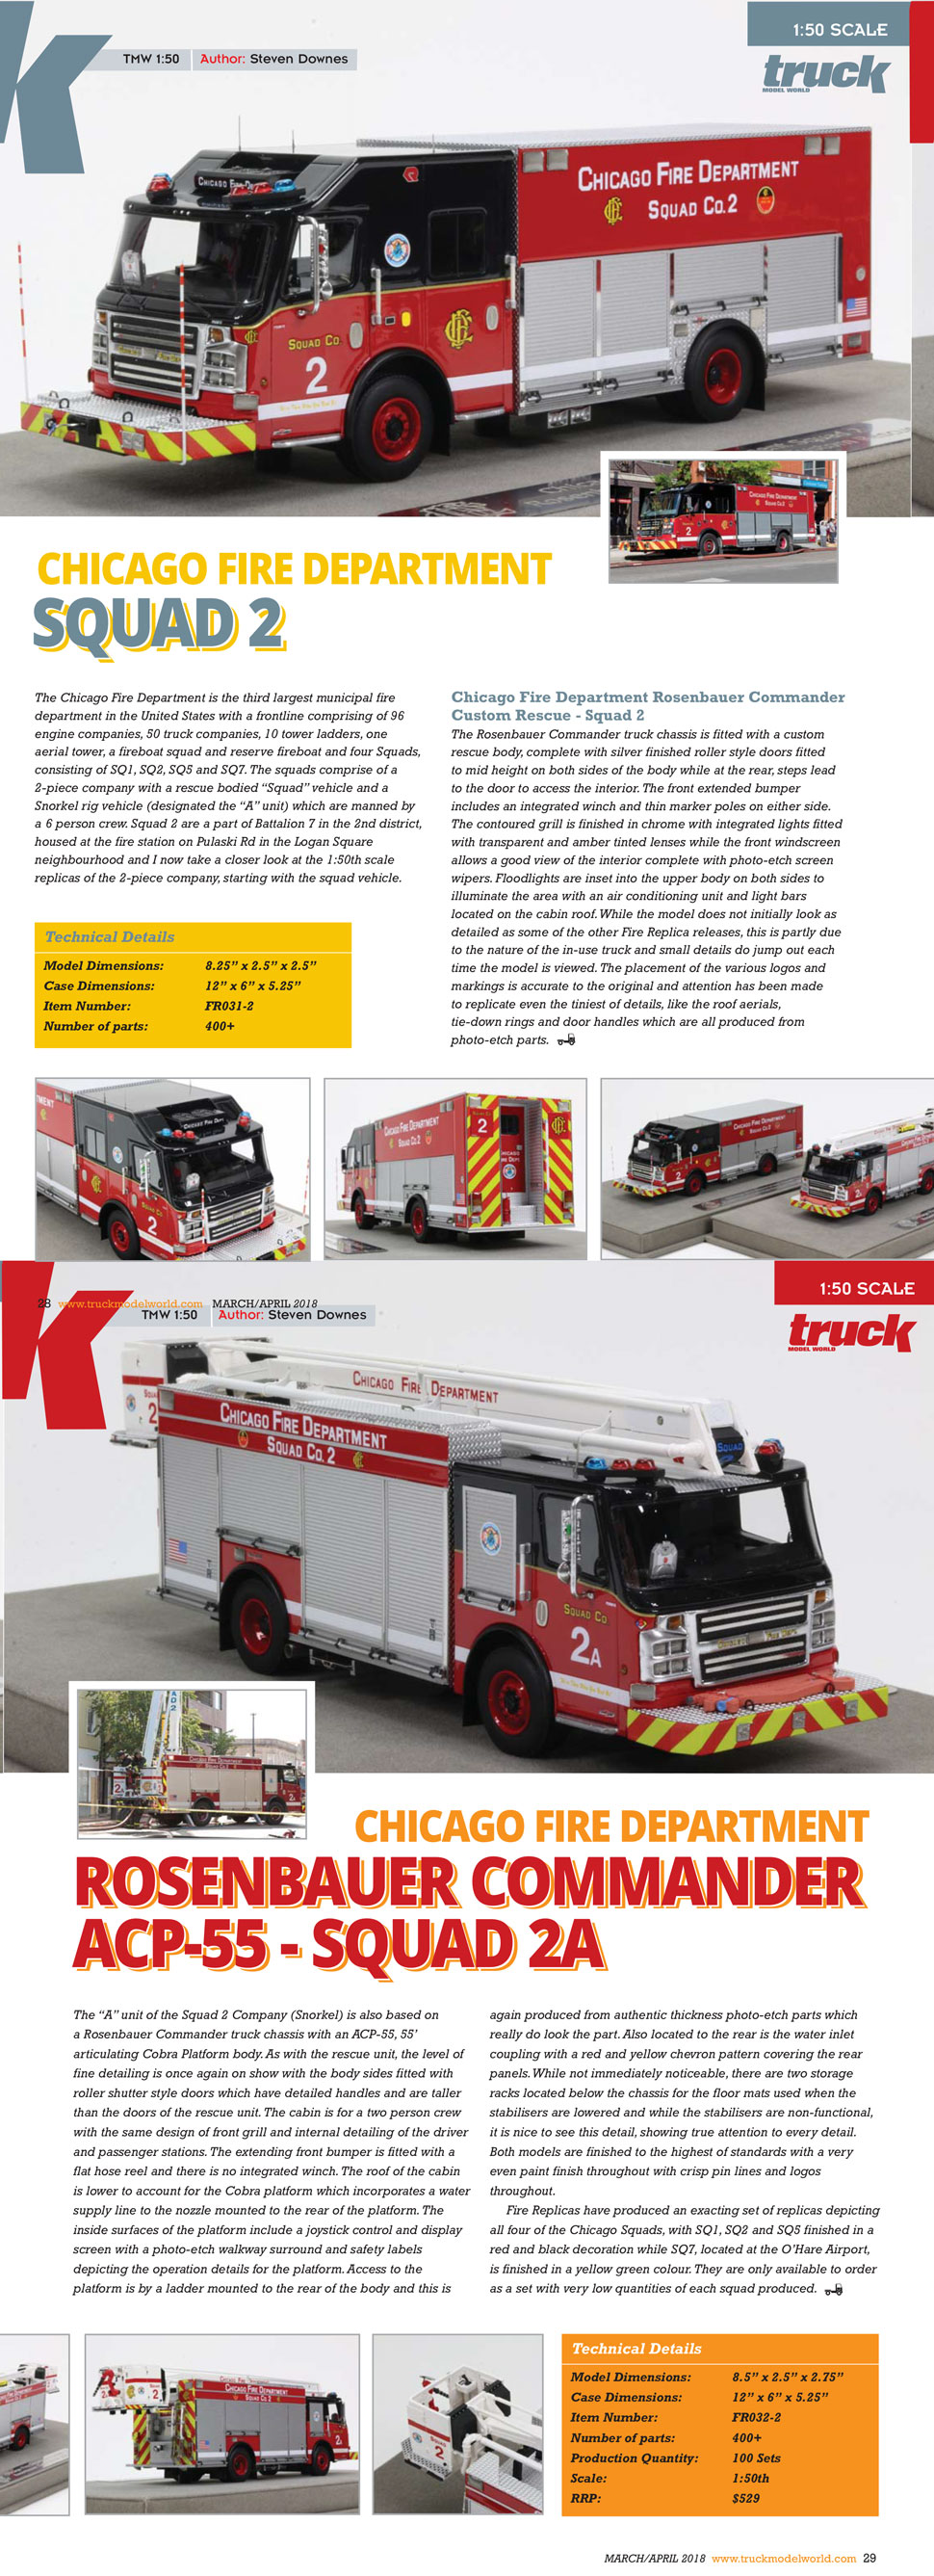 As seen in Truck Model World, March/April 2018 issue